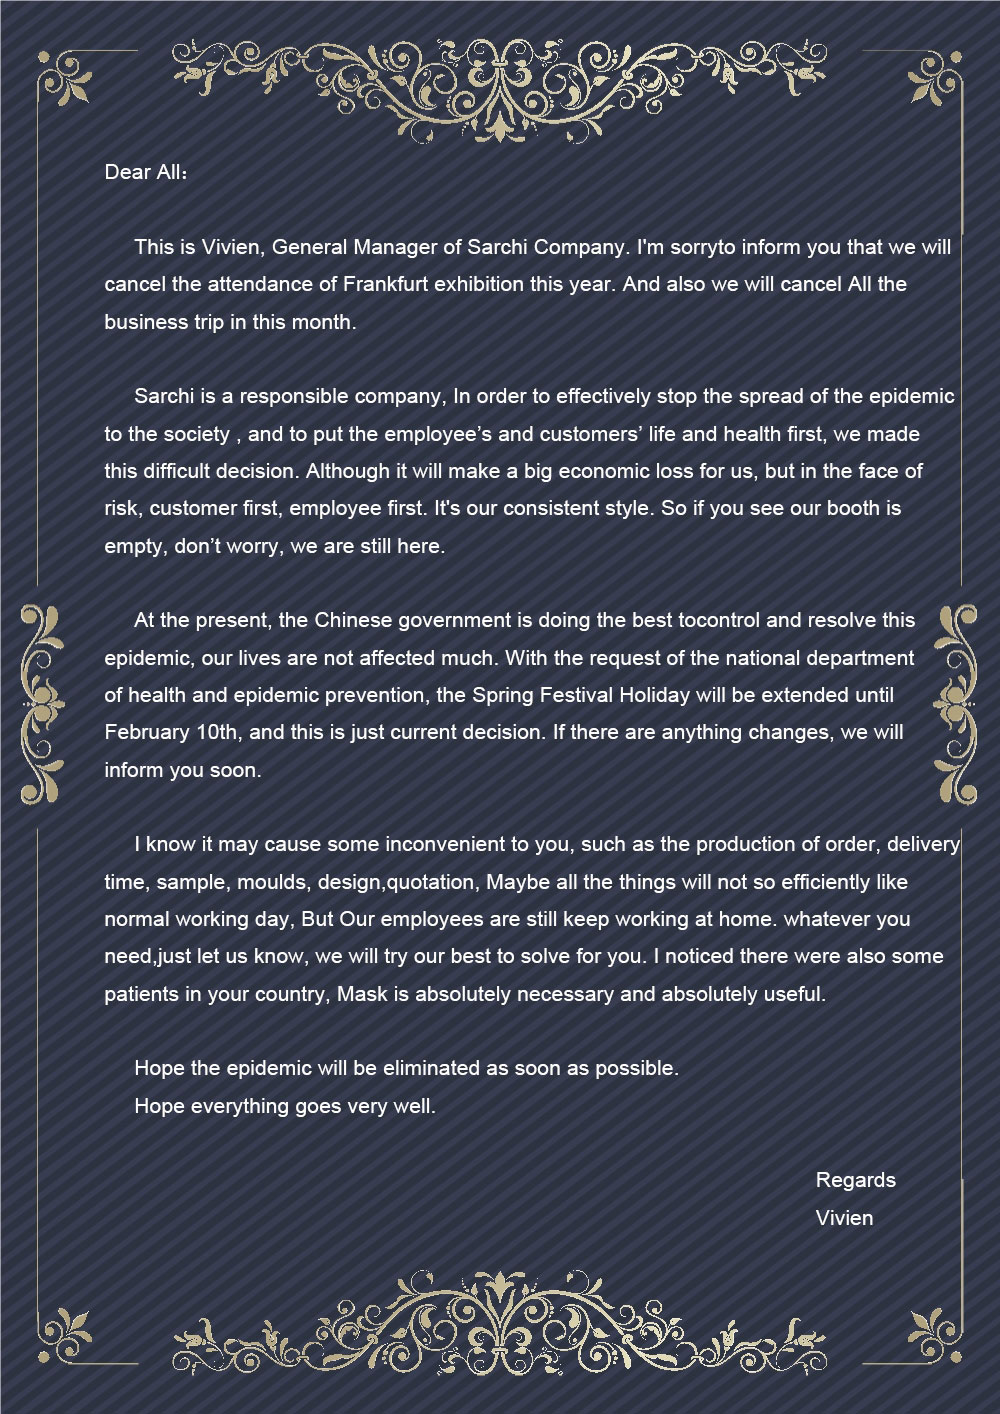 A letter from Sarchi to All